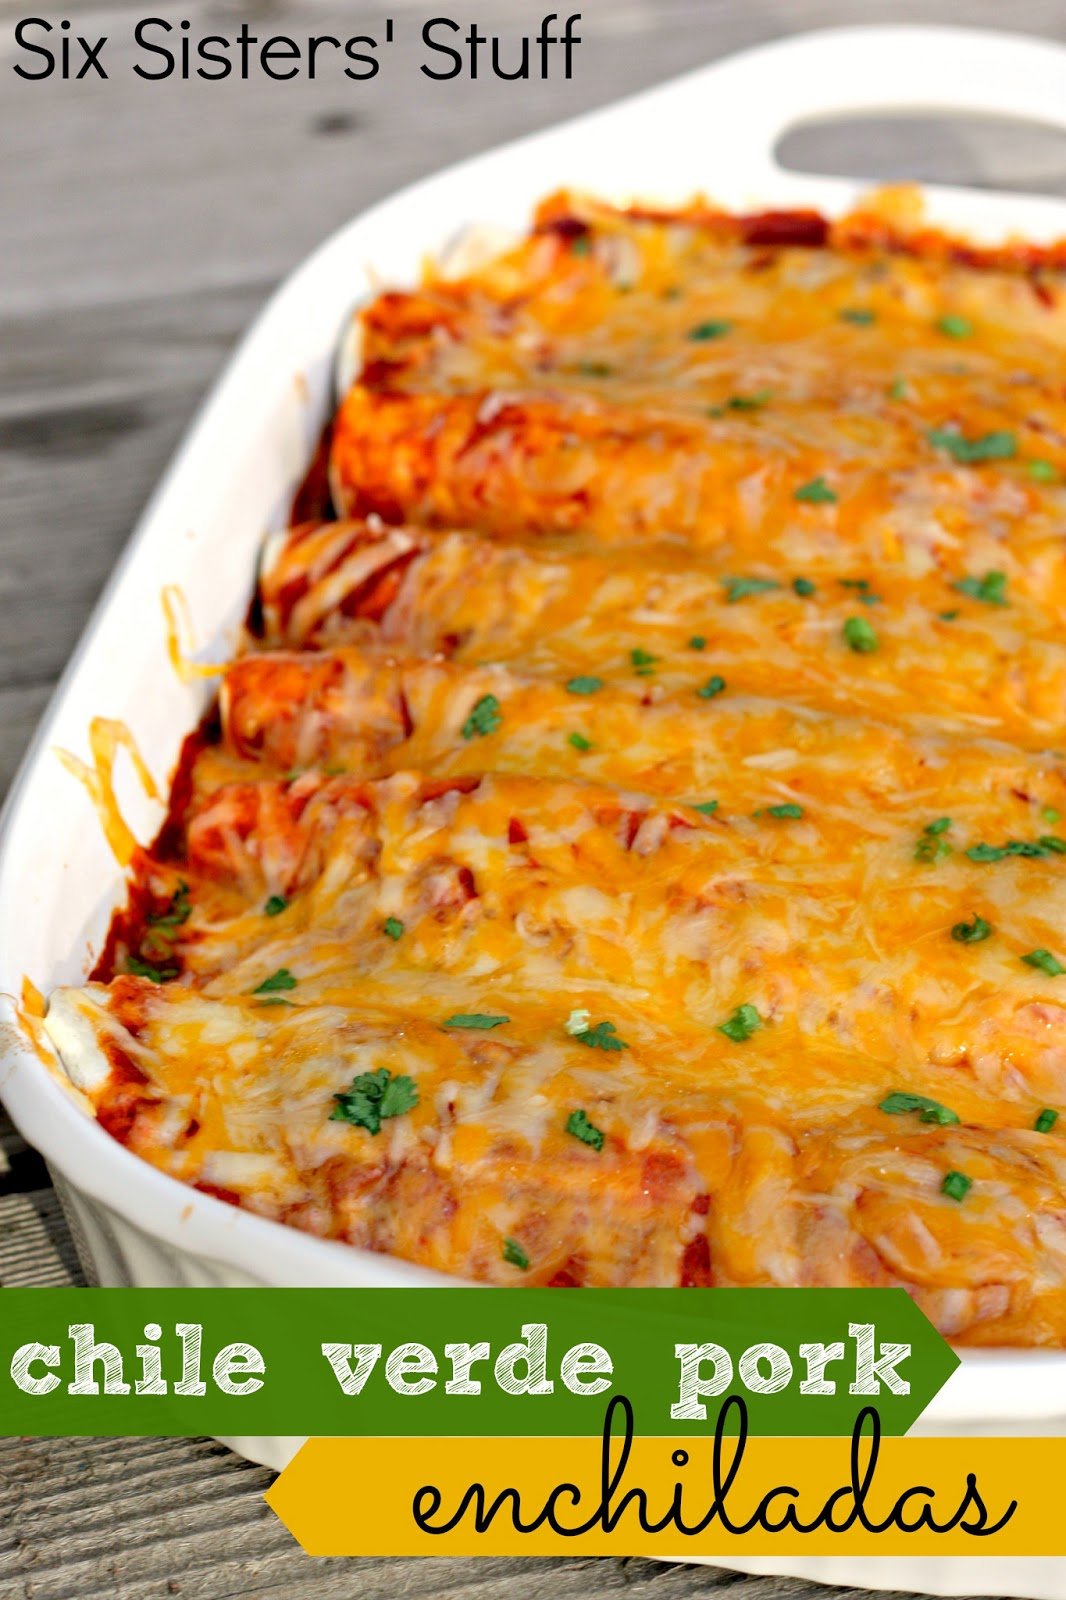 Slow Cooker Chile Verde Pork Enchiladas | Six Sisters' Stuff